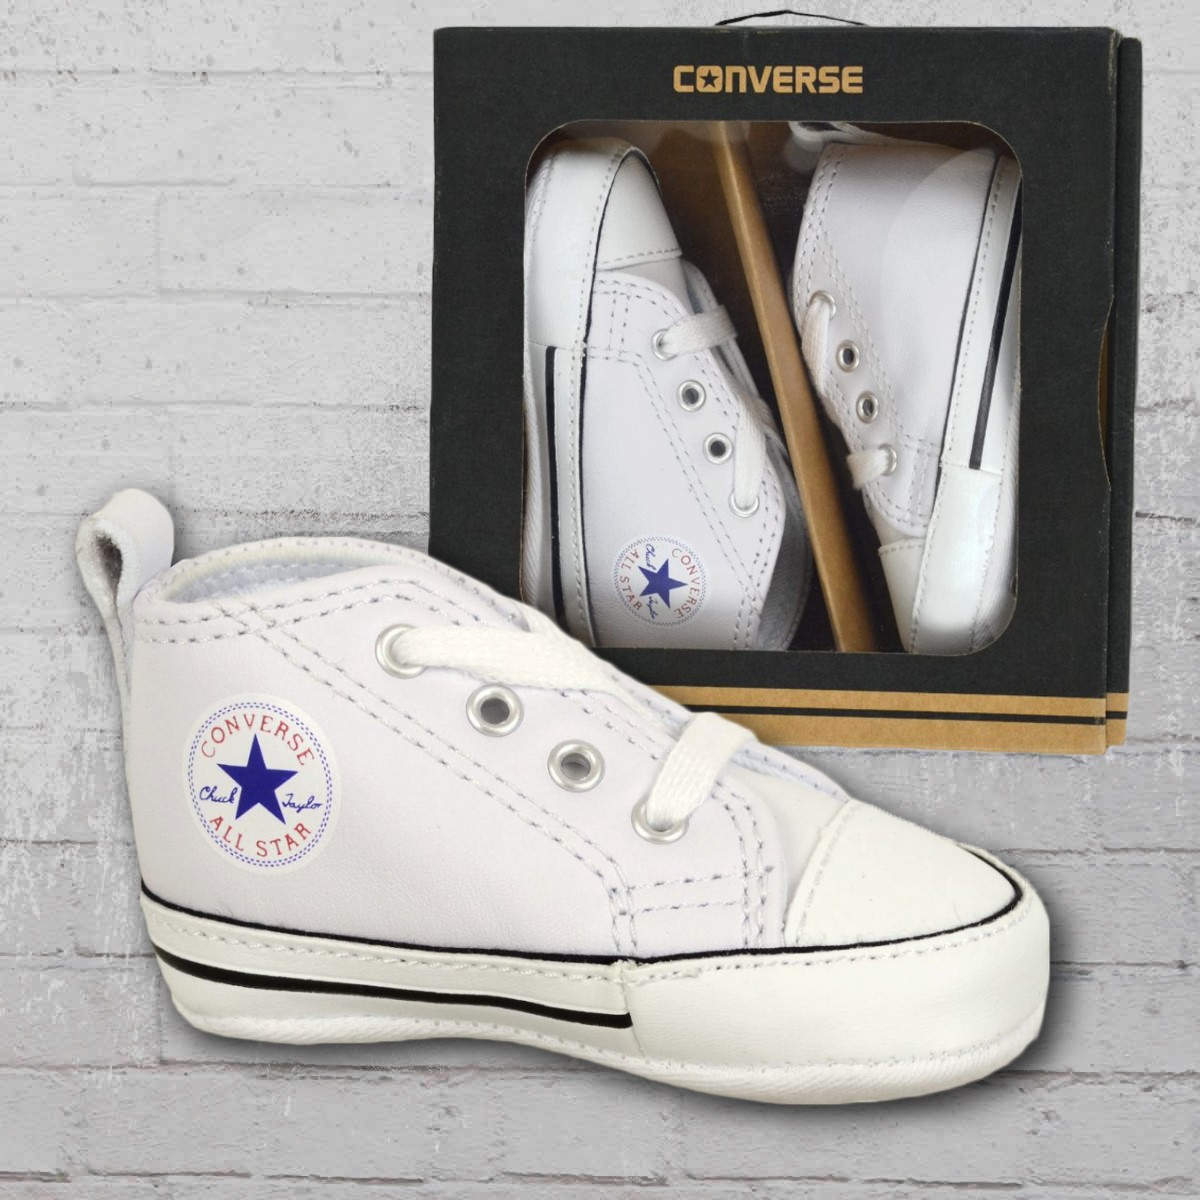 cb516e9517fc Converse Baby Shoes First Star Leather white. ›‹ «